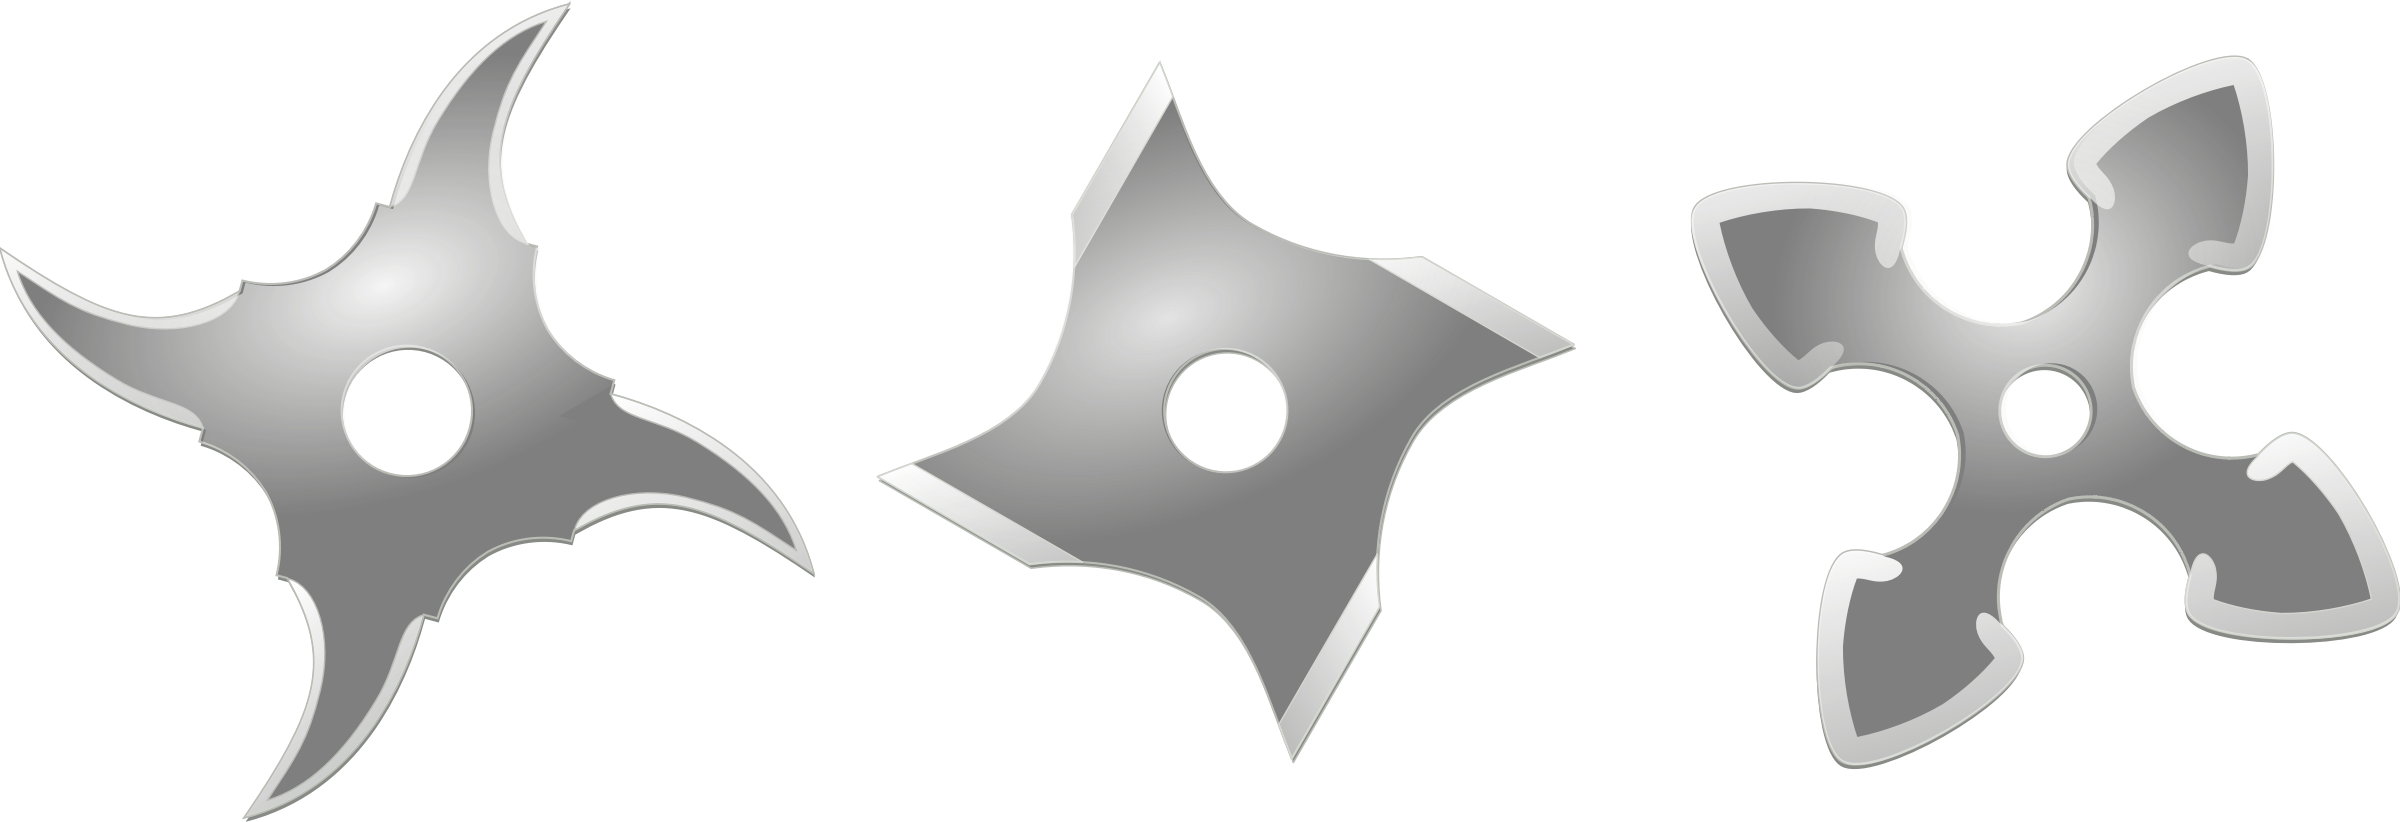 Shuriken clipart #1, Download drawings